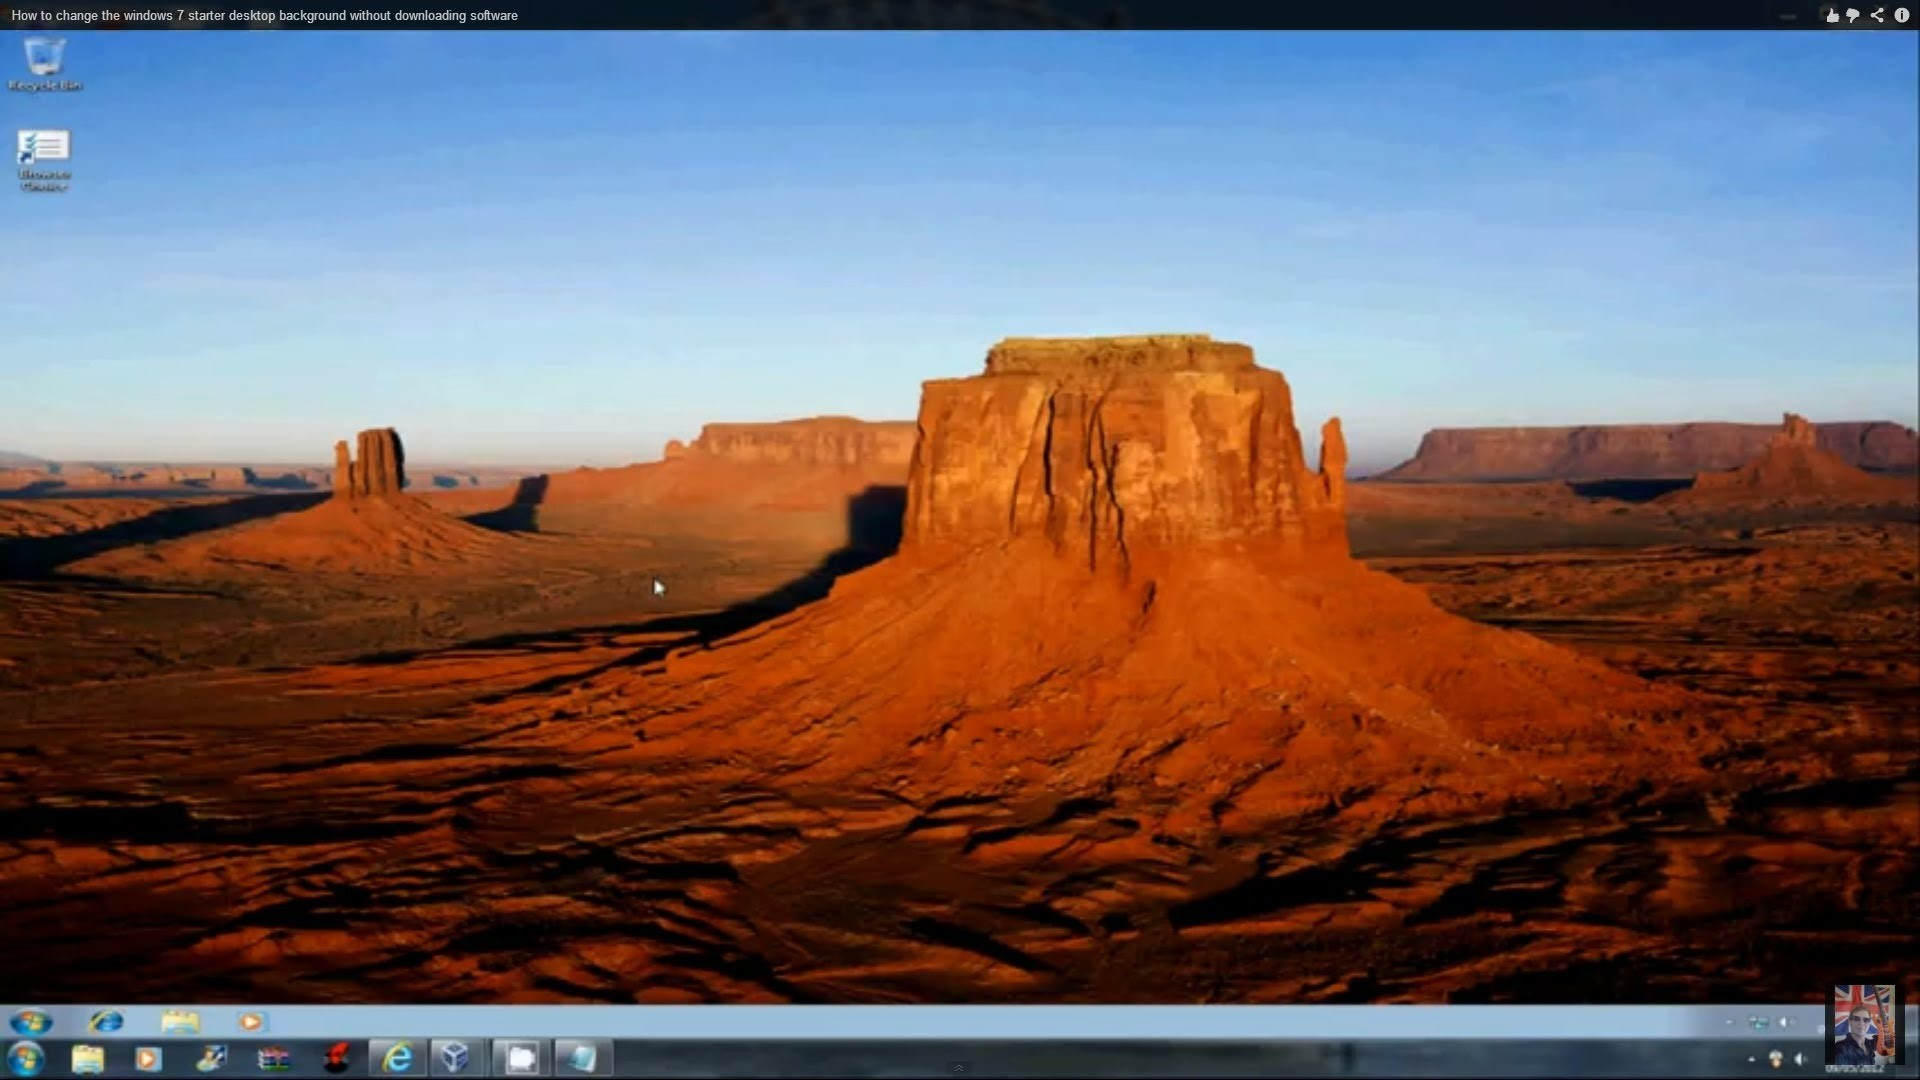 Desktop Wallpaper for Windows 7 (67+ images)